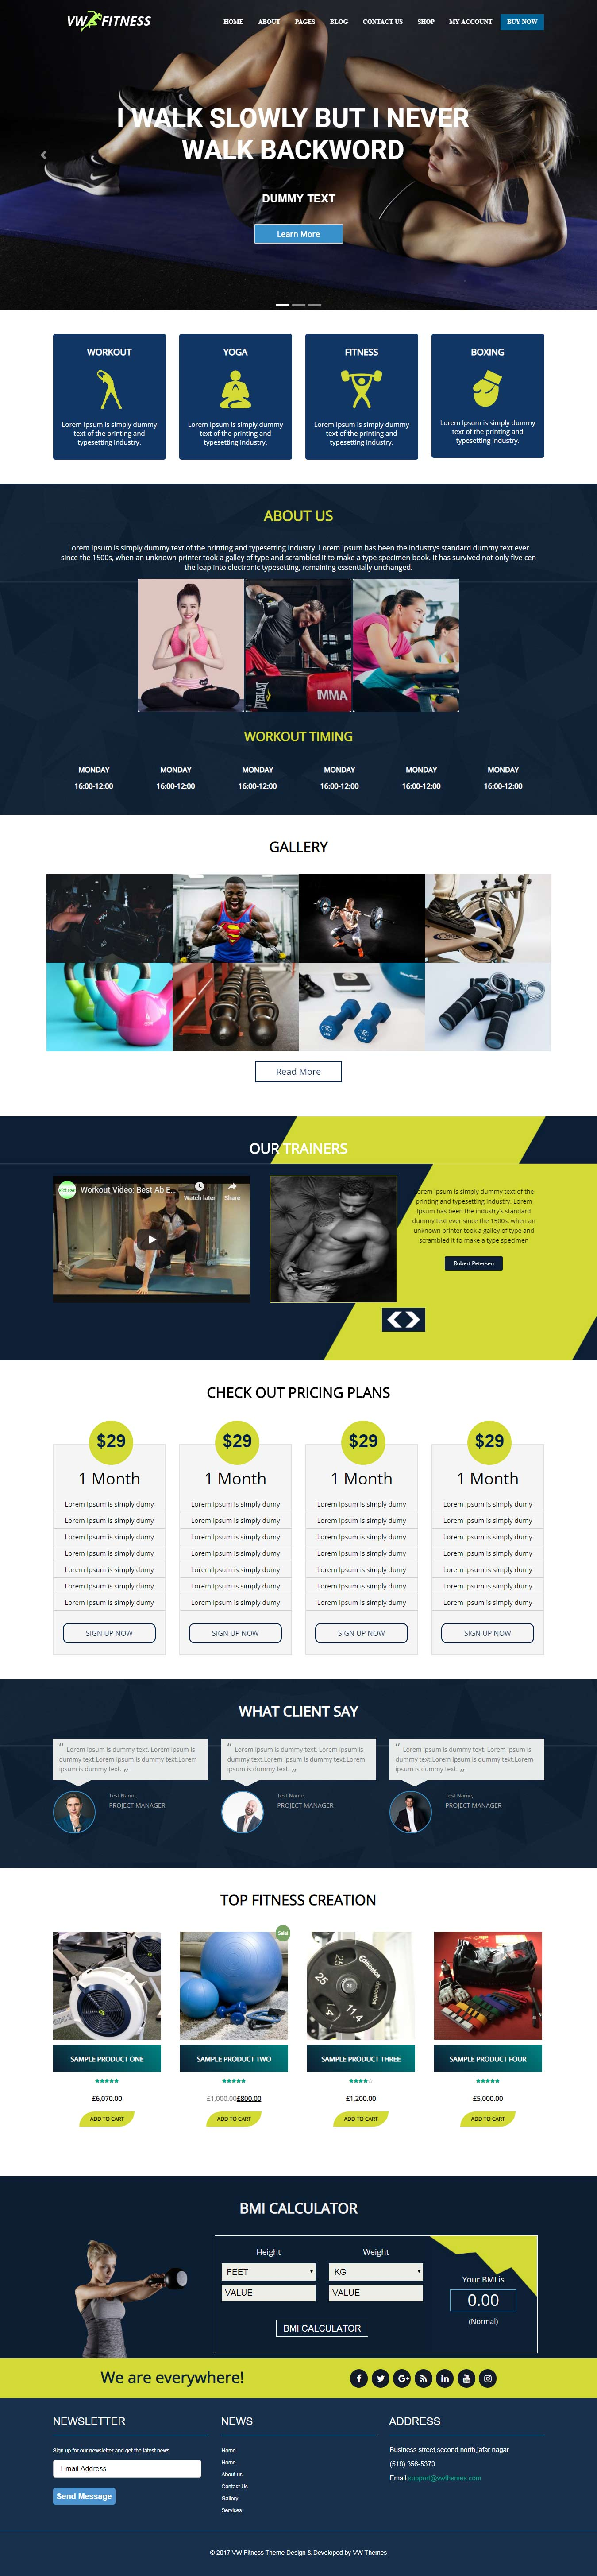 vw fitness best free sports wordpress theme - 10+ Best Free Sports WordPress Themes